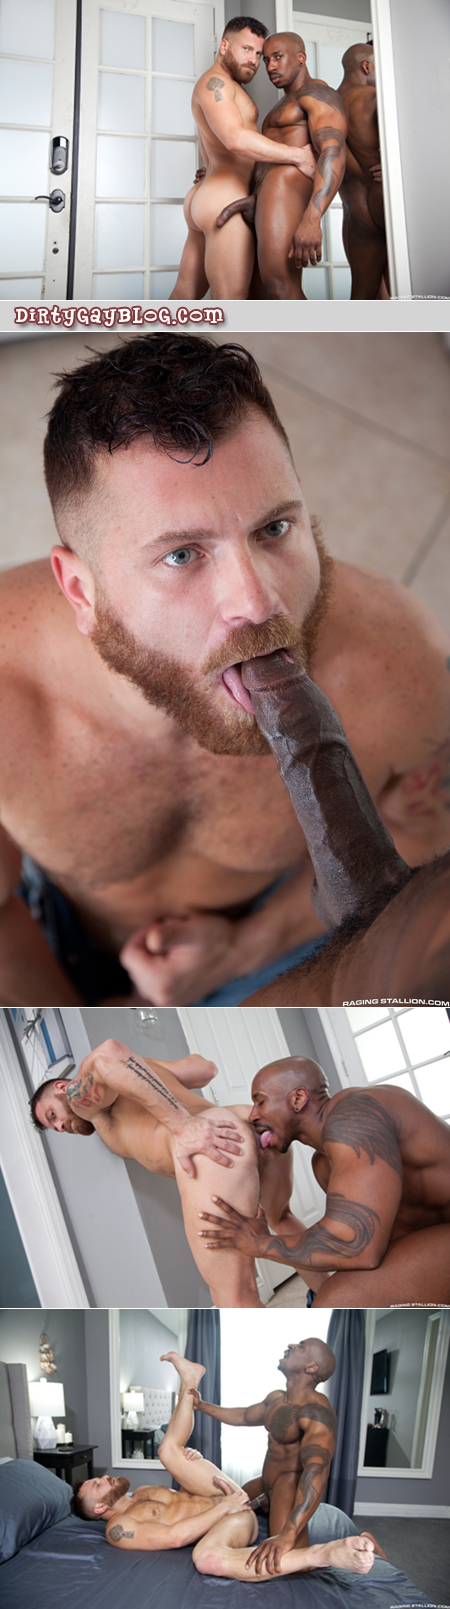 Muscle bear driver getting fucked in the ass by his horse-hung black customer.